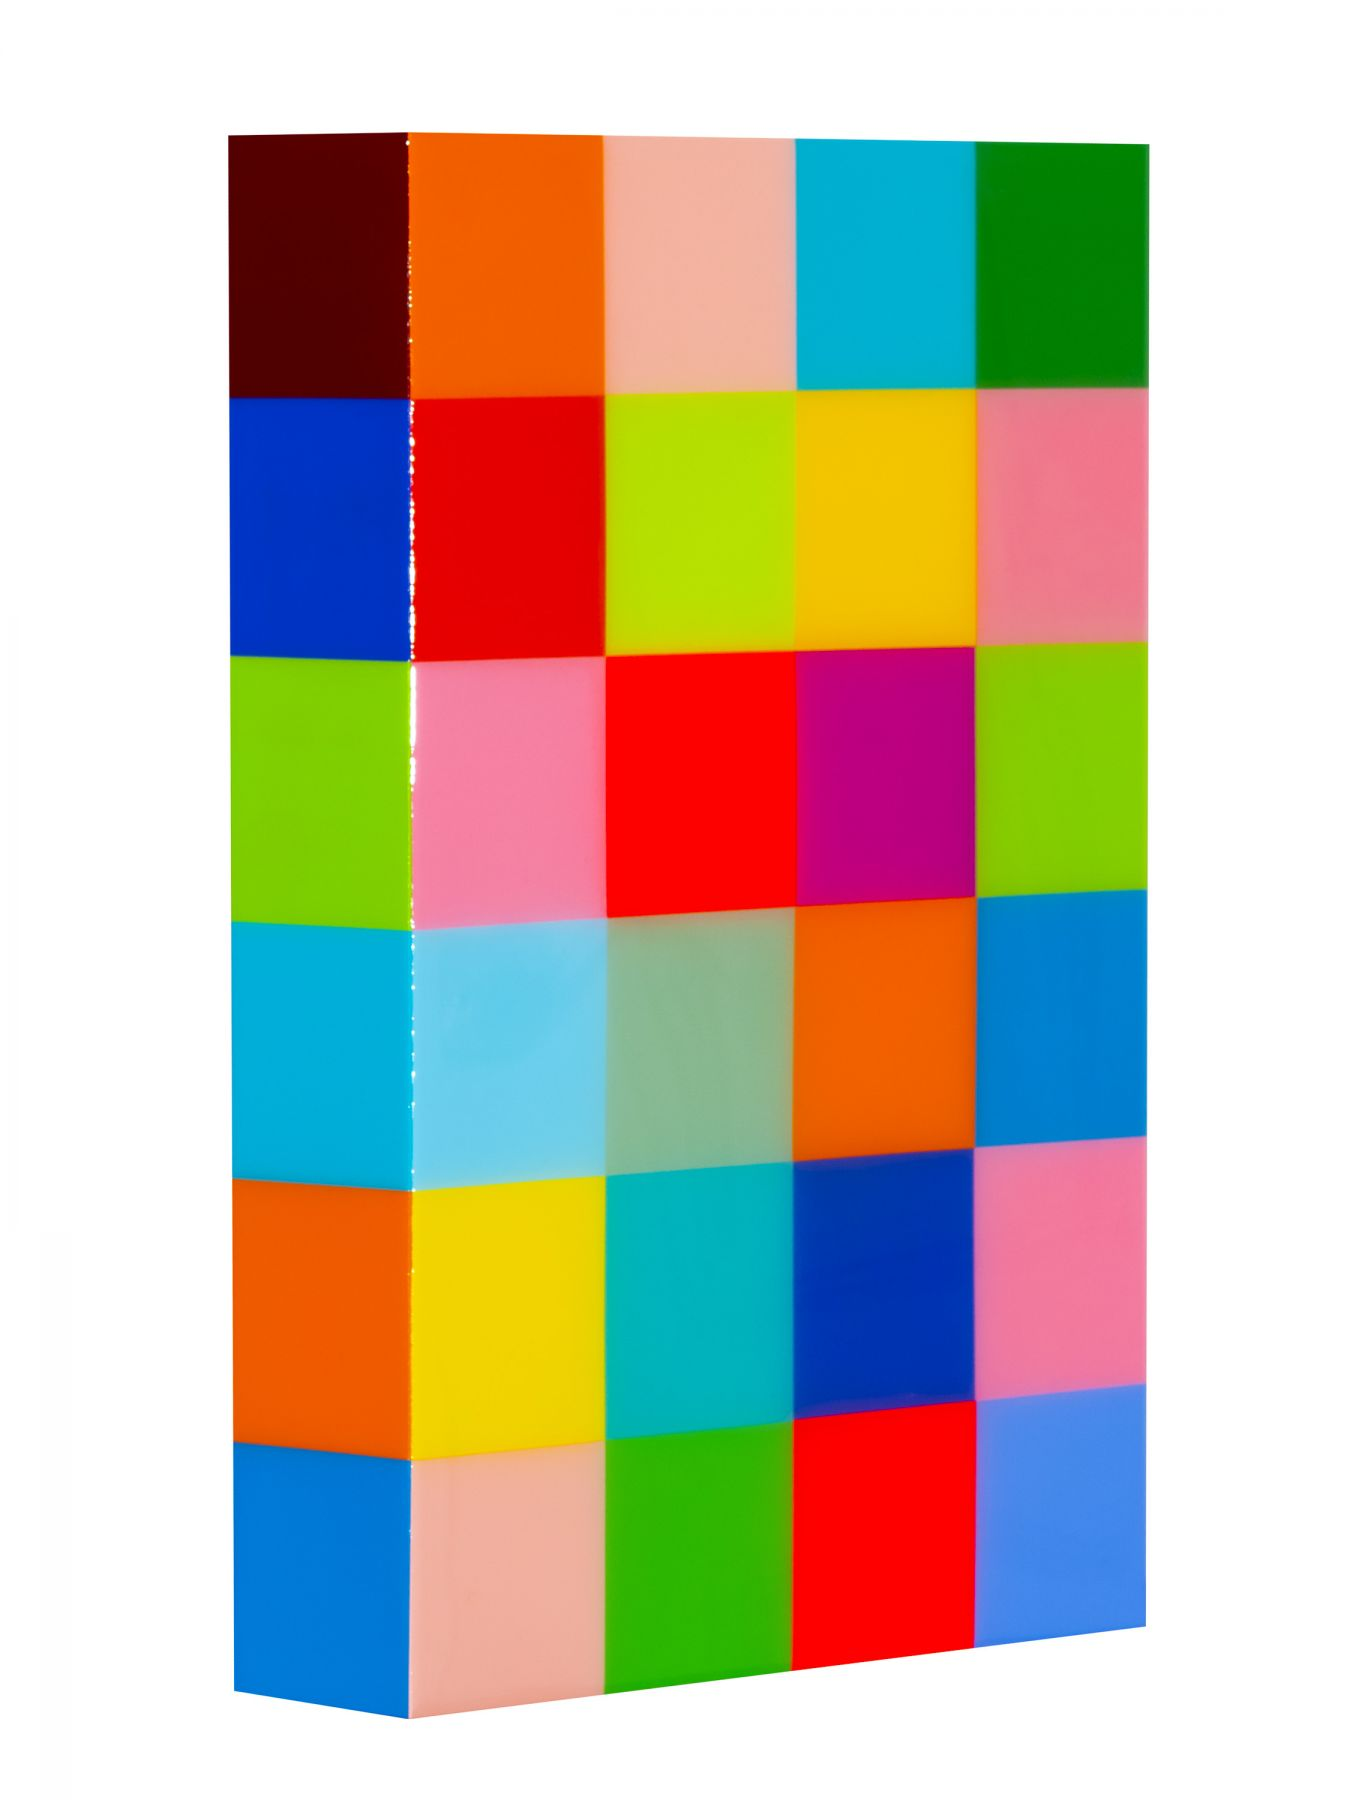 Heidi Spector, Deep In The Heart of Me I, 2019, Liquitex with resin on Birch panel,18 x 12 x 3 inches, Signed, titled and dated on the verso, Vertical panel with bright and colorful cubes set in a glass-like surface, Heidi Spector creates geometric minimalist art inspired by musical rhythms that are composed of repetitive cubes in candy-like colors that vibrate.